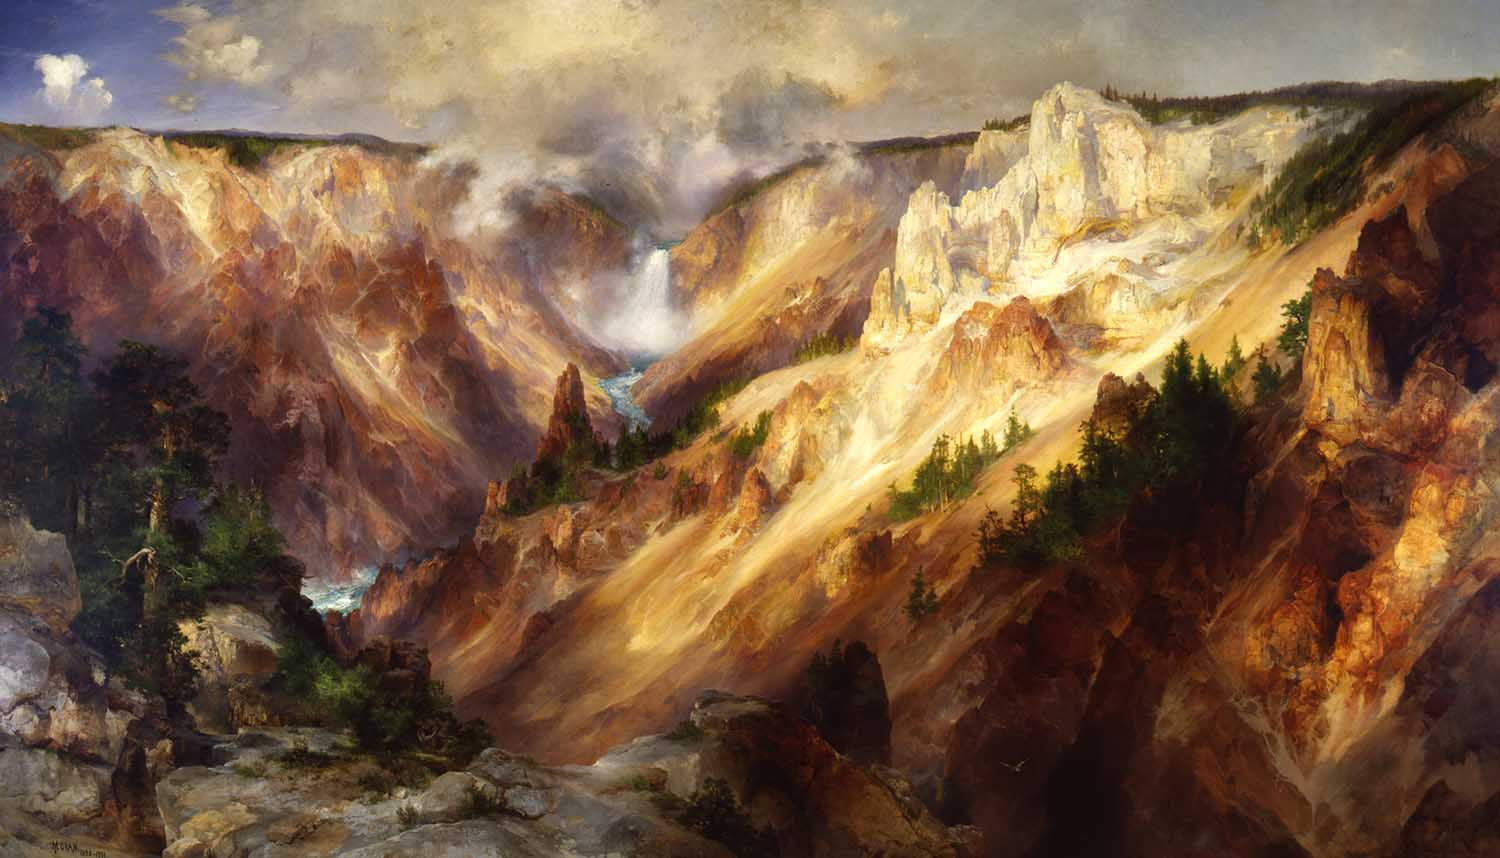 """The Grand Canyon of the Yellowstone,"" by Thomas Moran, whose paintings were used to persuade Congress to designate Yellowstone as a national park."